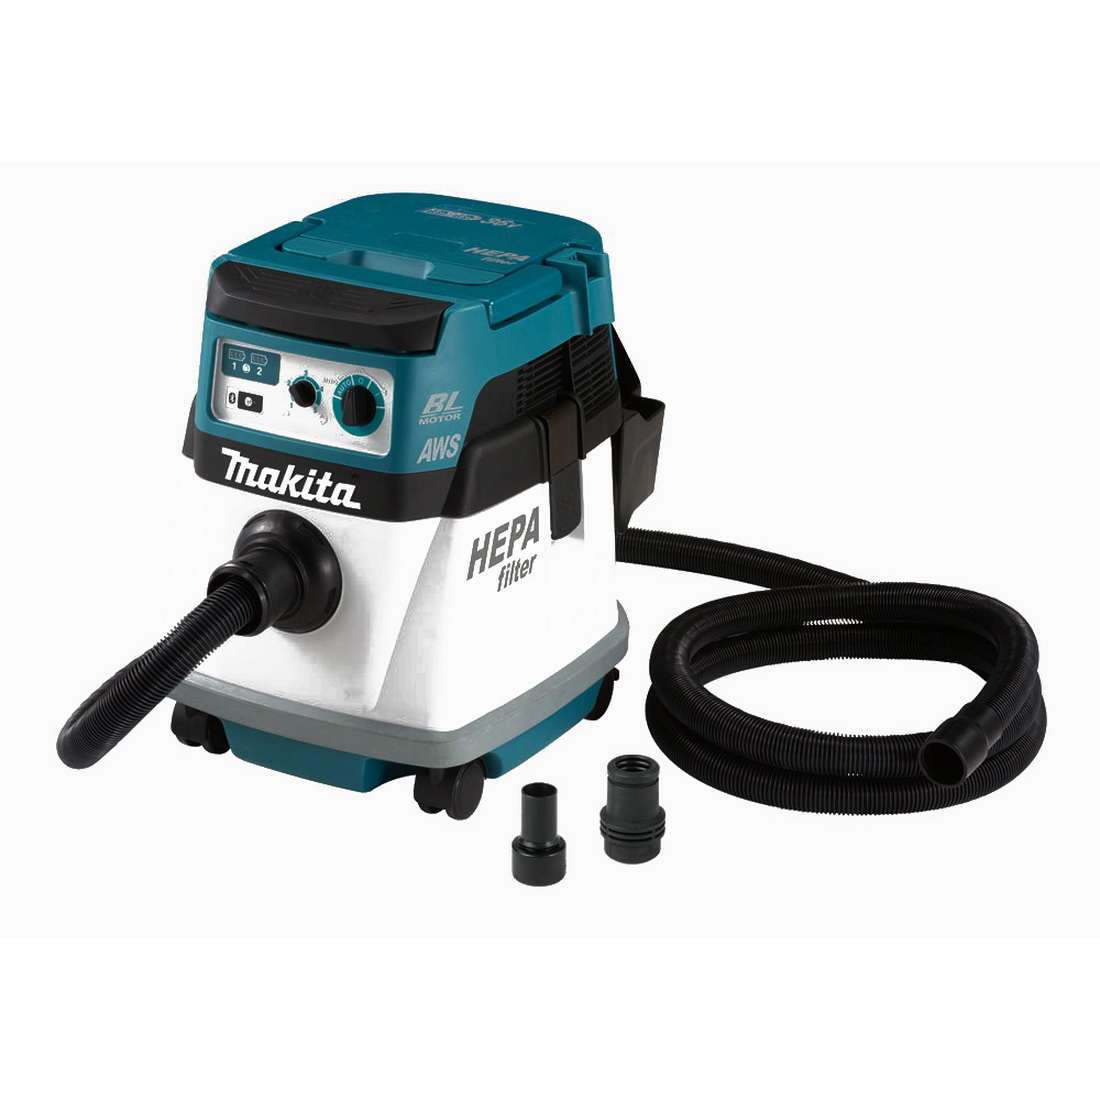 2x18V 15L Lithium-Ion Cordless Brushless AWS HEPA Dust Extraction Vacuum Skin